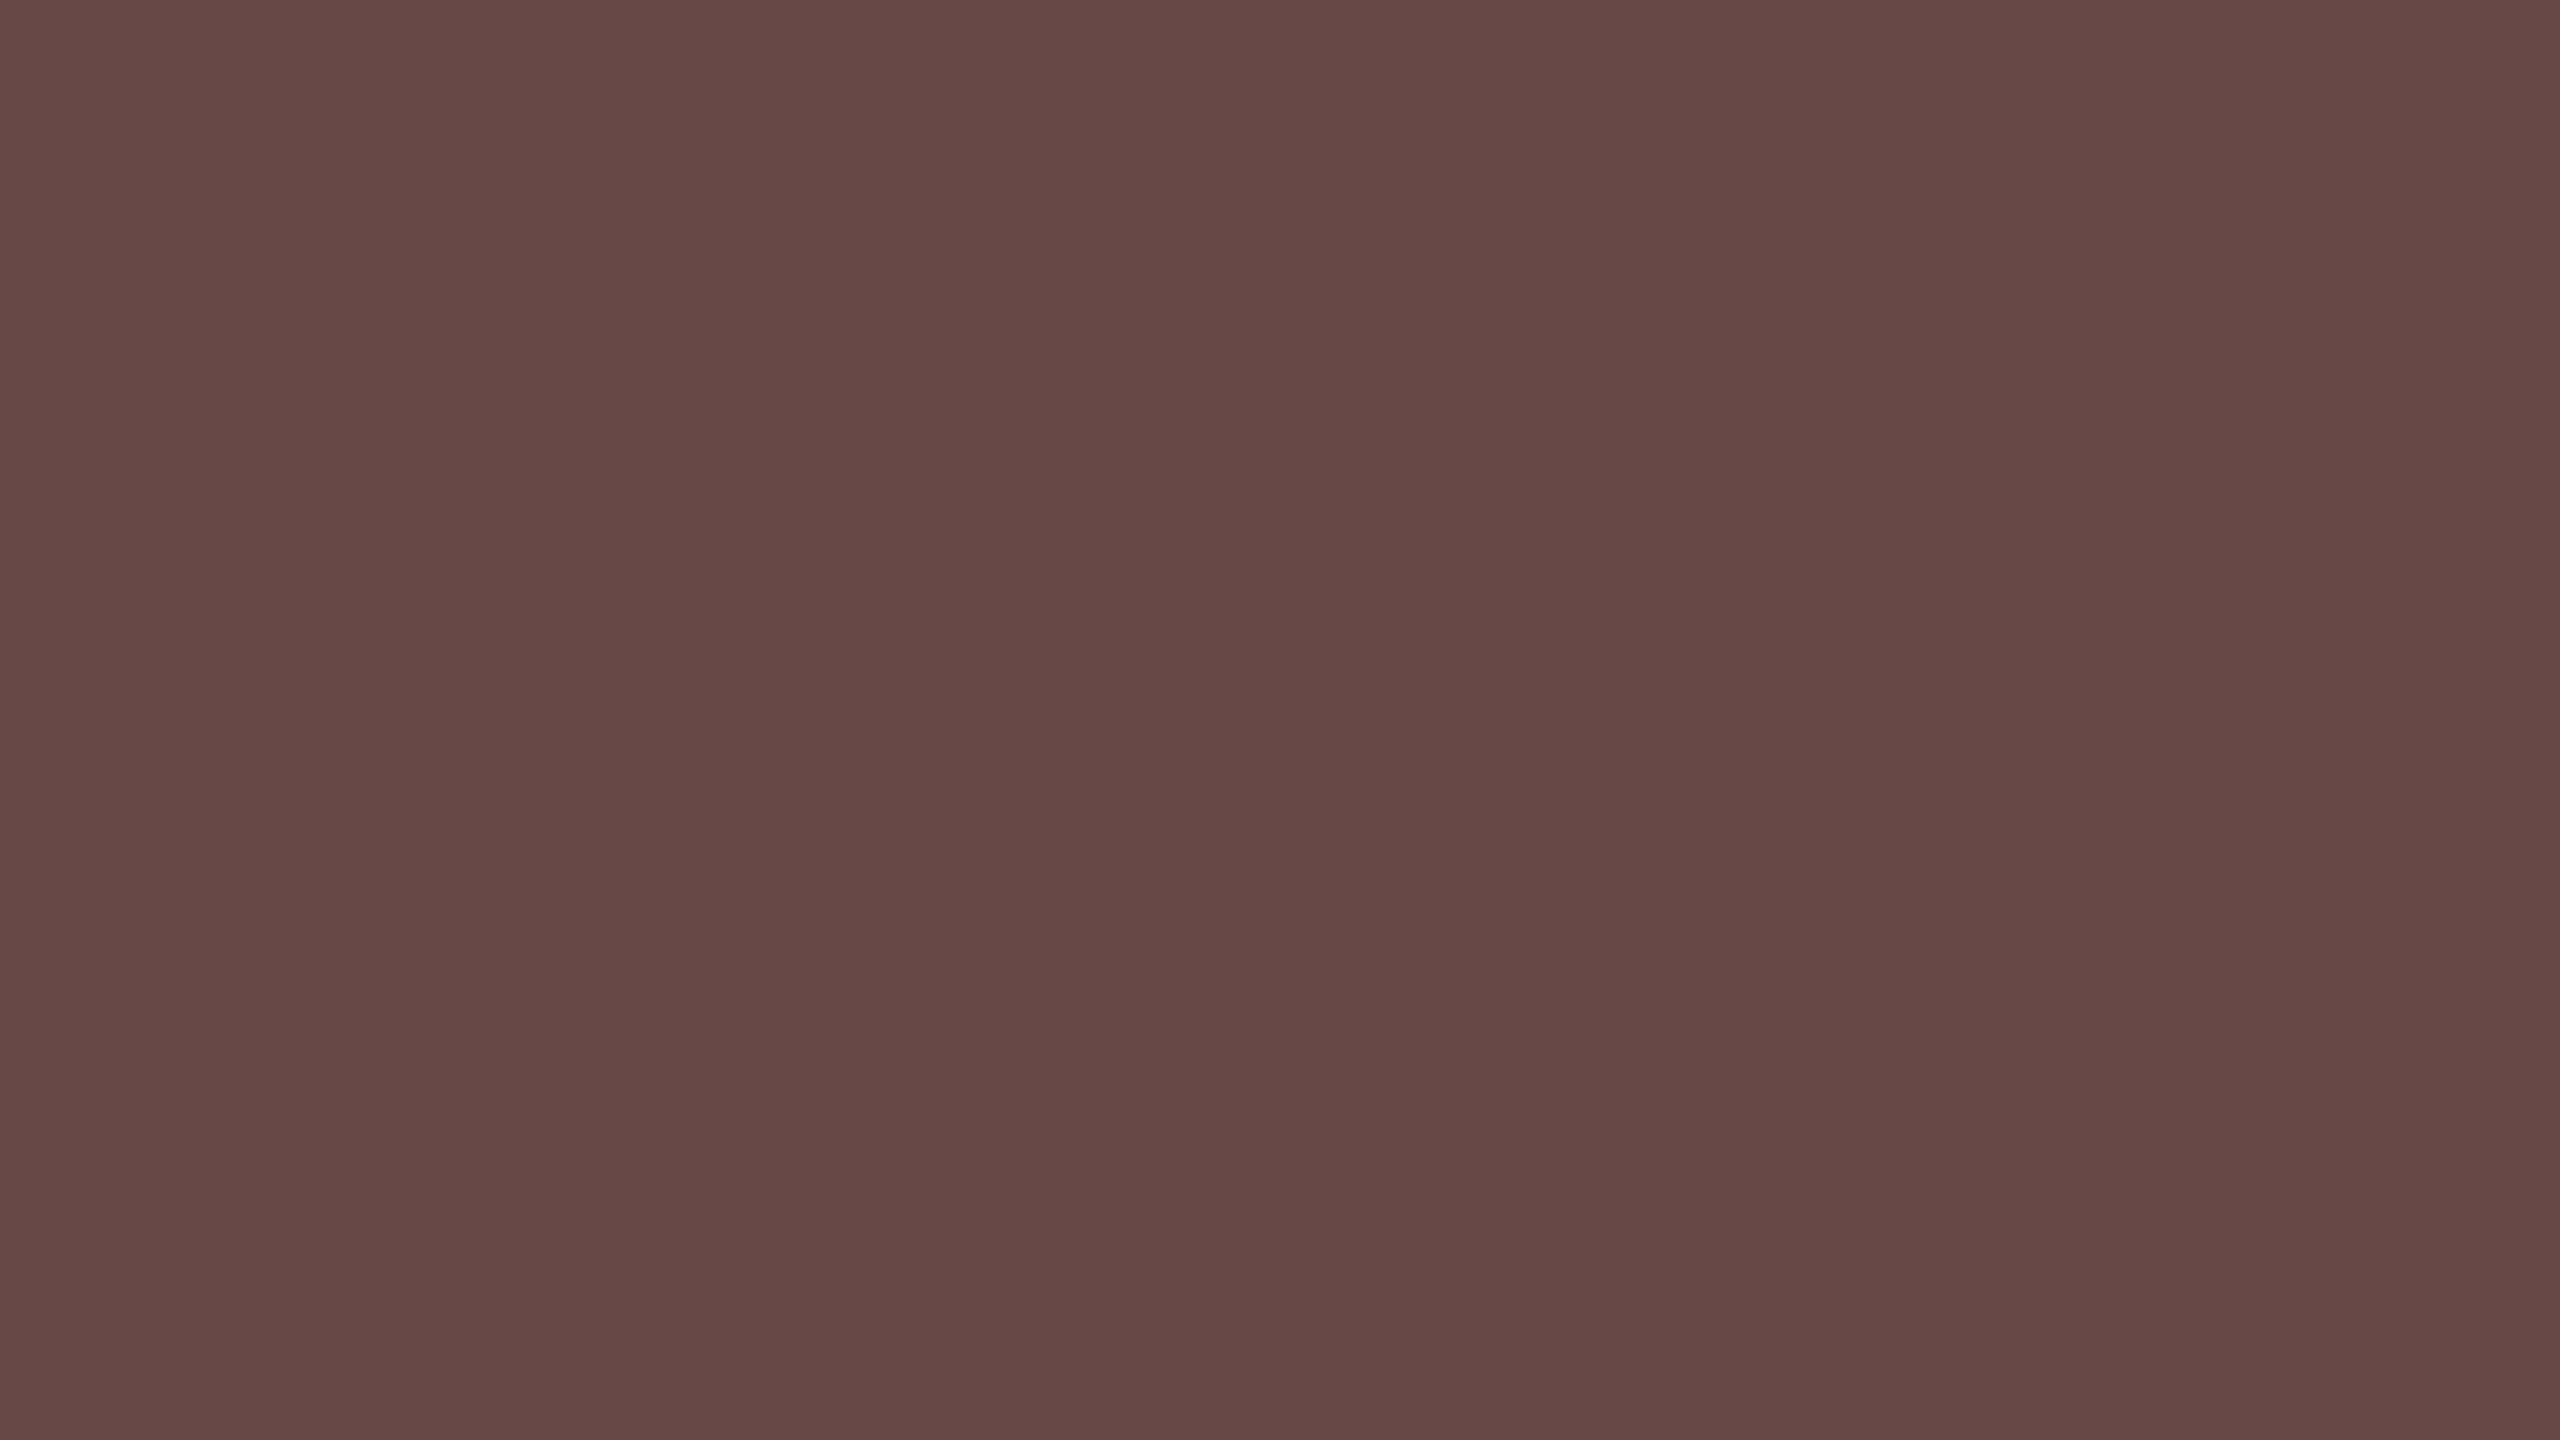 2560x1440 Rose Ebony Solid Color Background